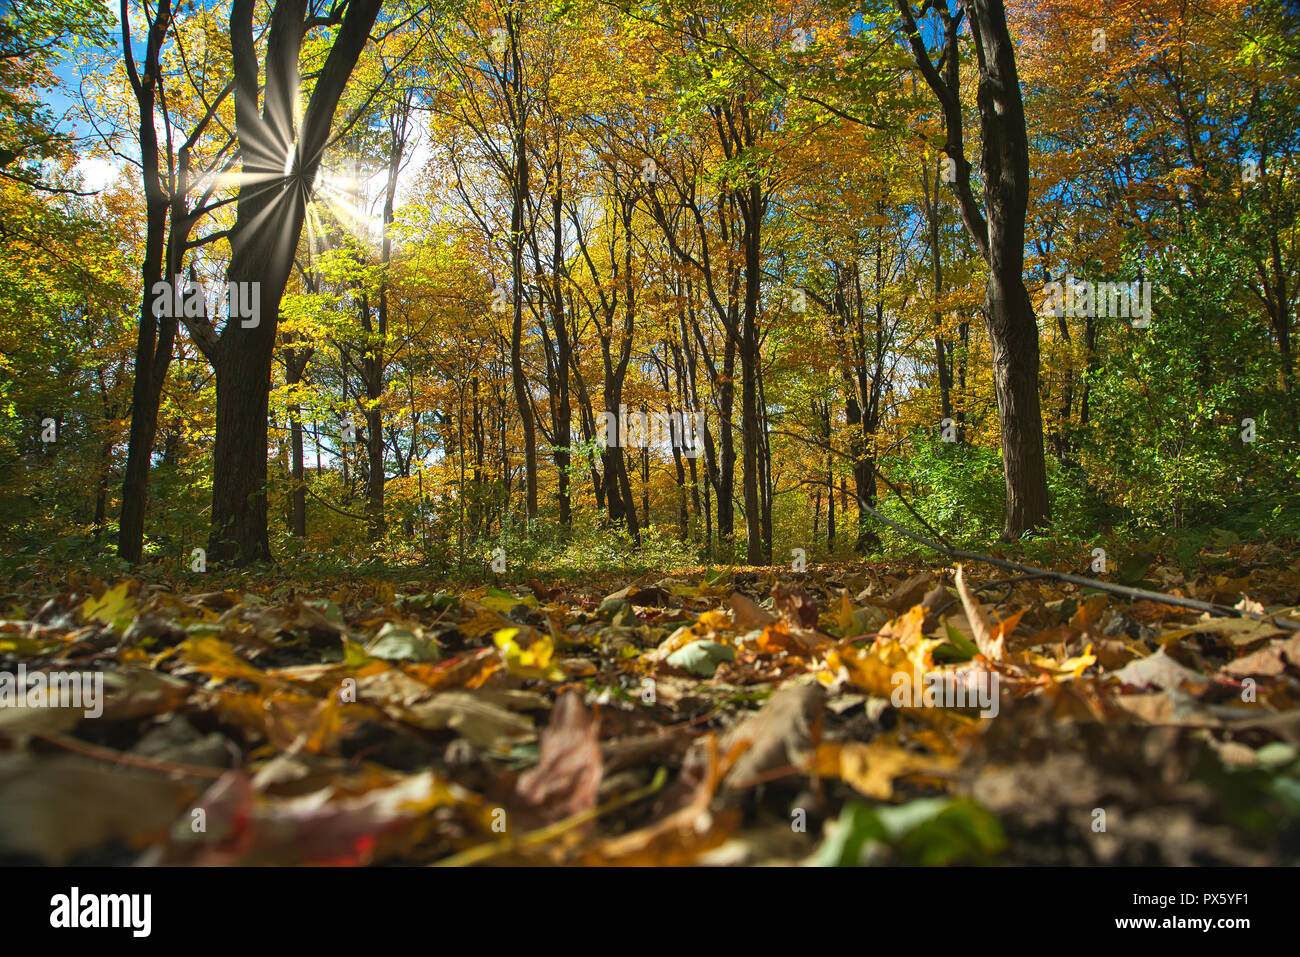 Montreal,Canada,18 October,2018.Autumn scenery in Quebec forest. Credit:Mario Beauregard/Alamy Live News - Stock Image